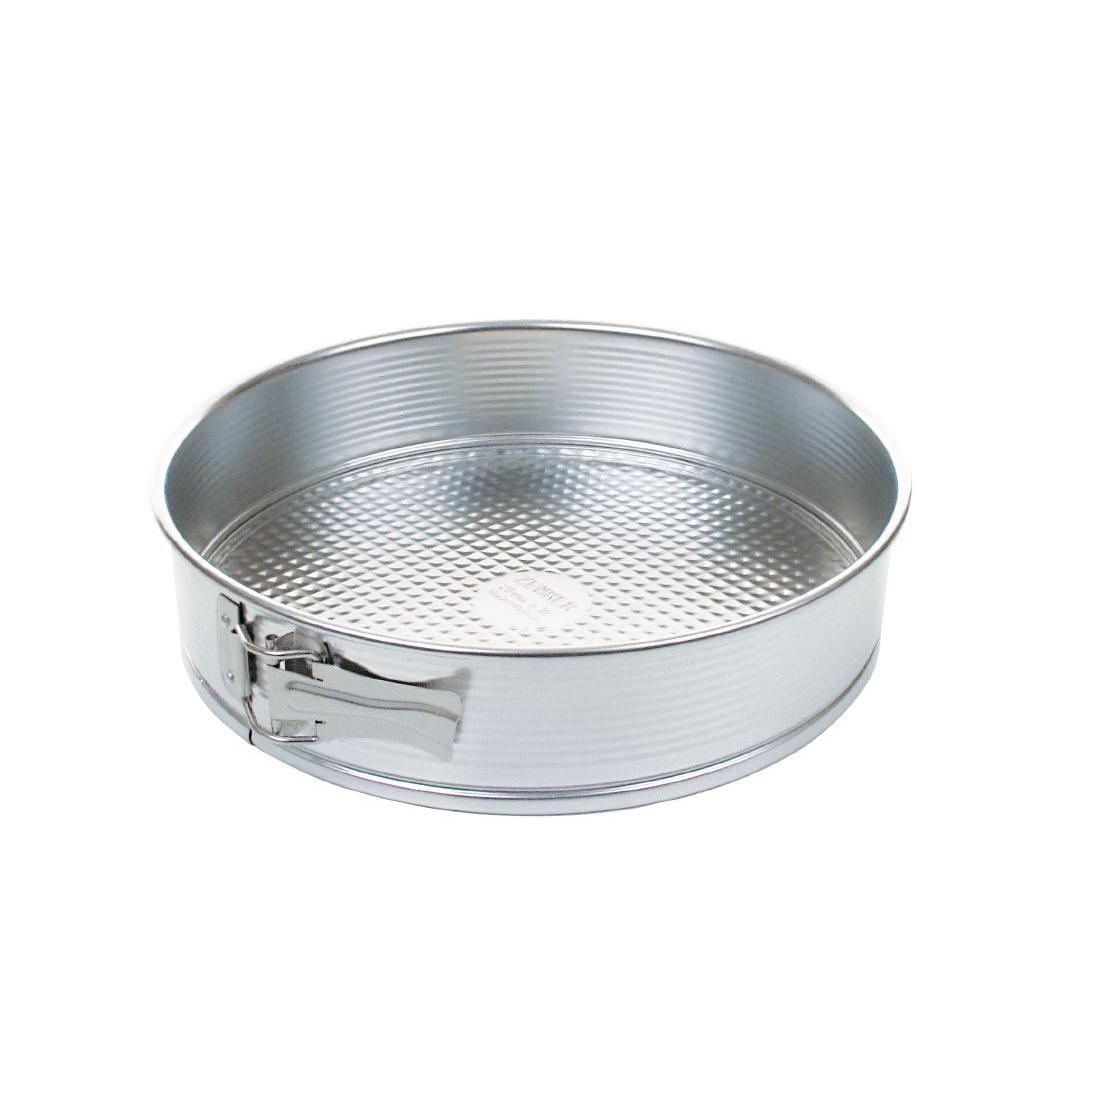 Vogue Spring Form Cake Tin 240mm - Each - E847